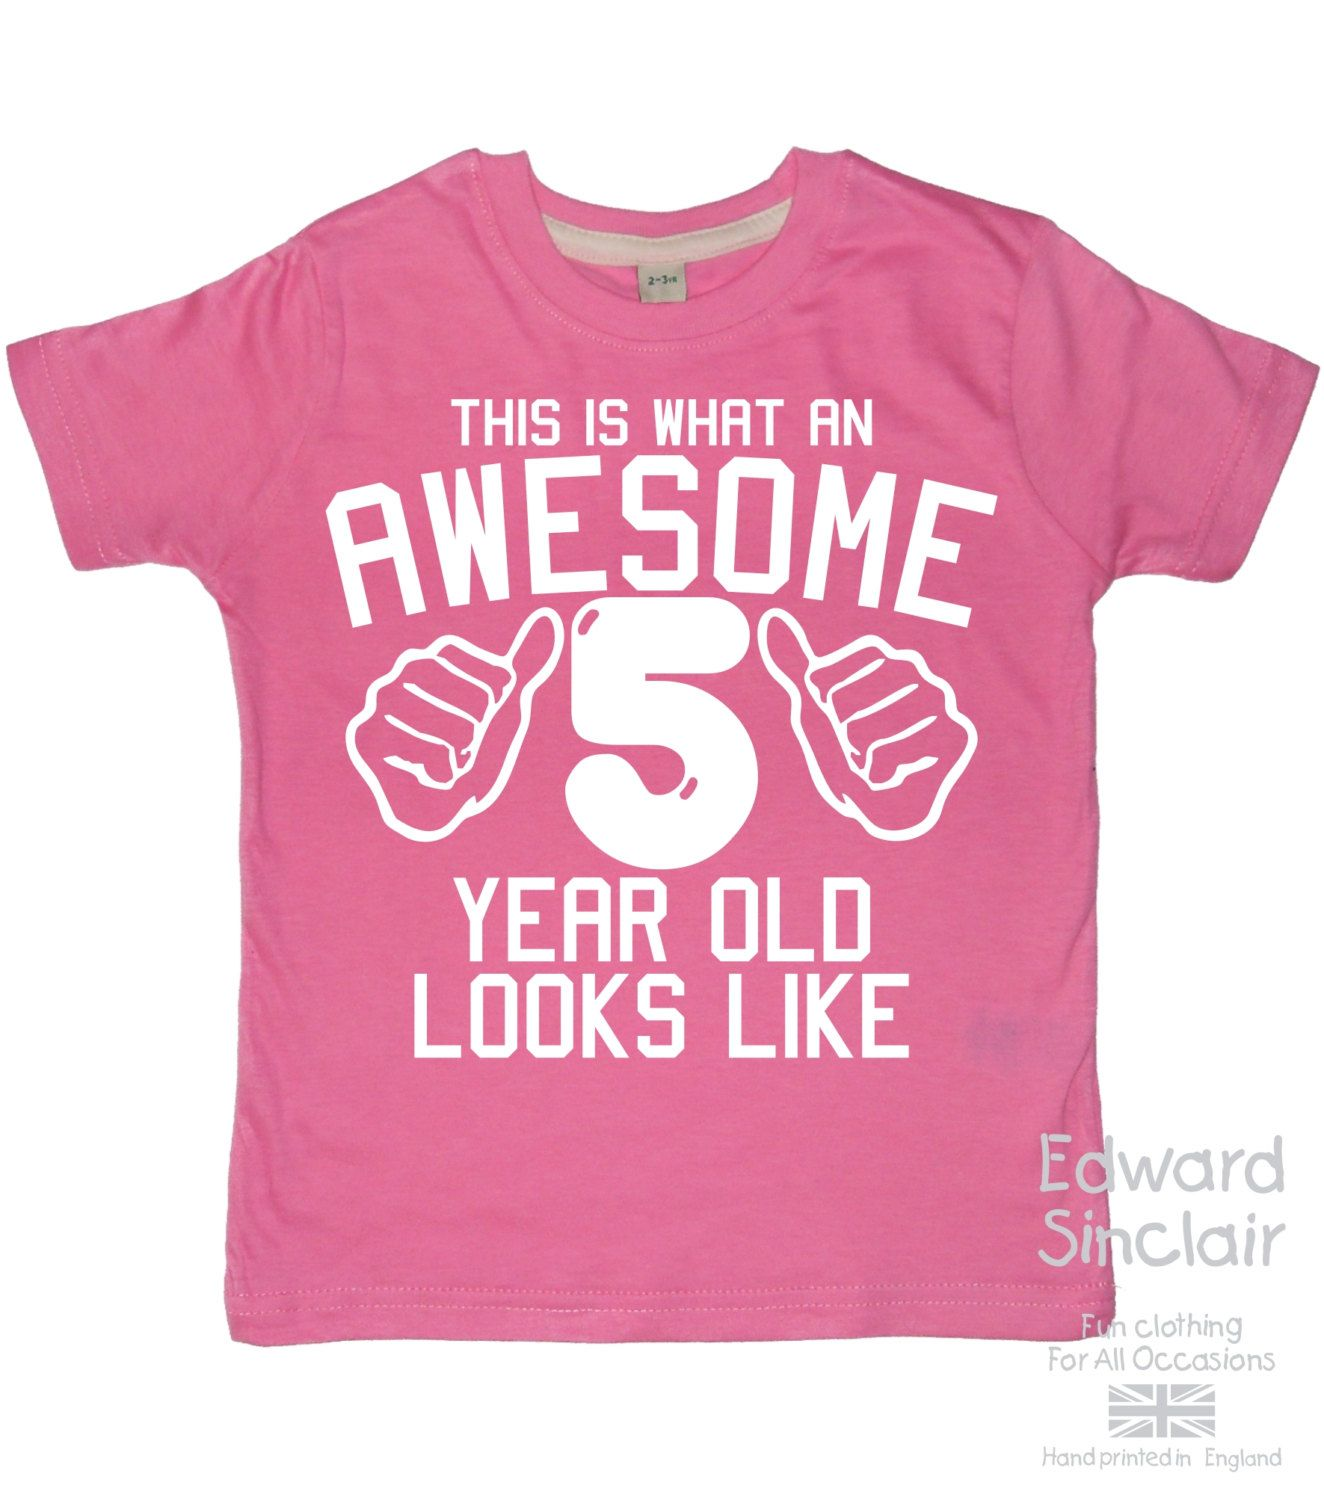 This Is What An Awesome 5 Year Old Looks Like Girls 5th Birthday T Shirt With White Glitter Print By EdwardSinclair On Etsy